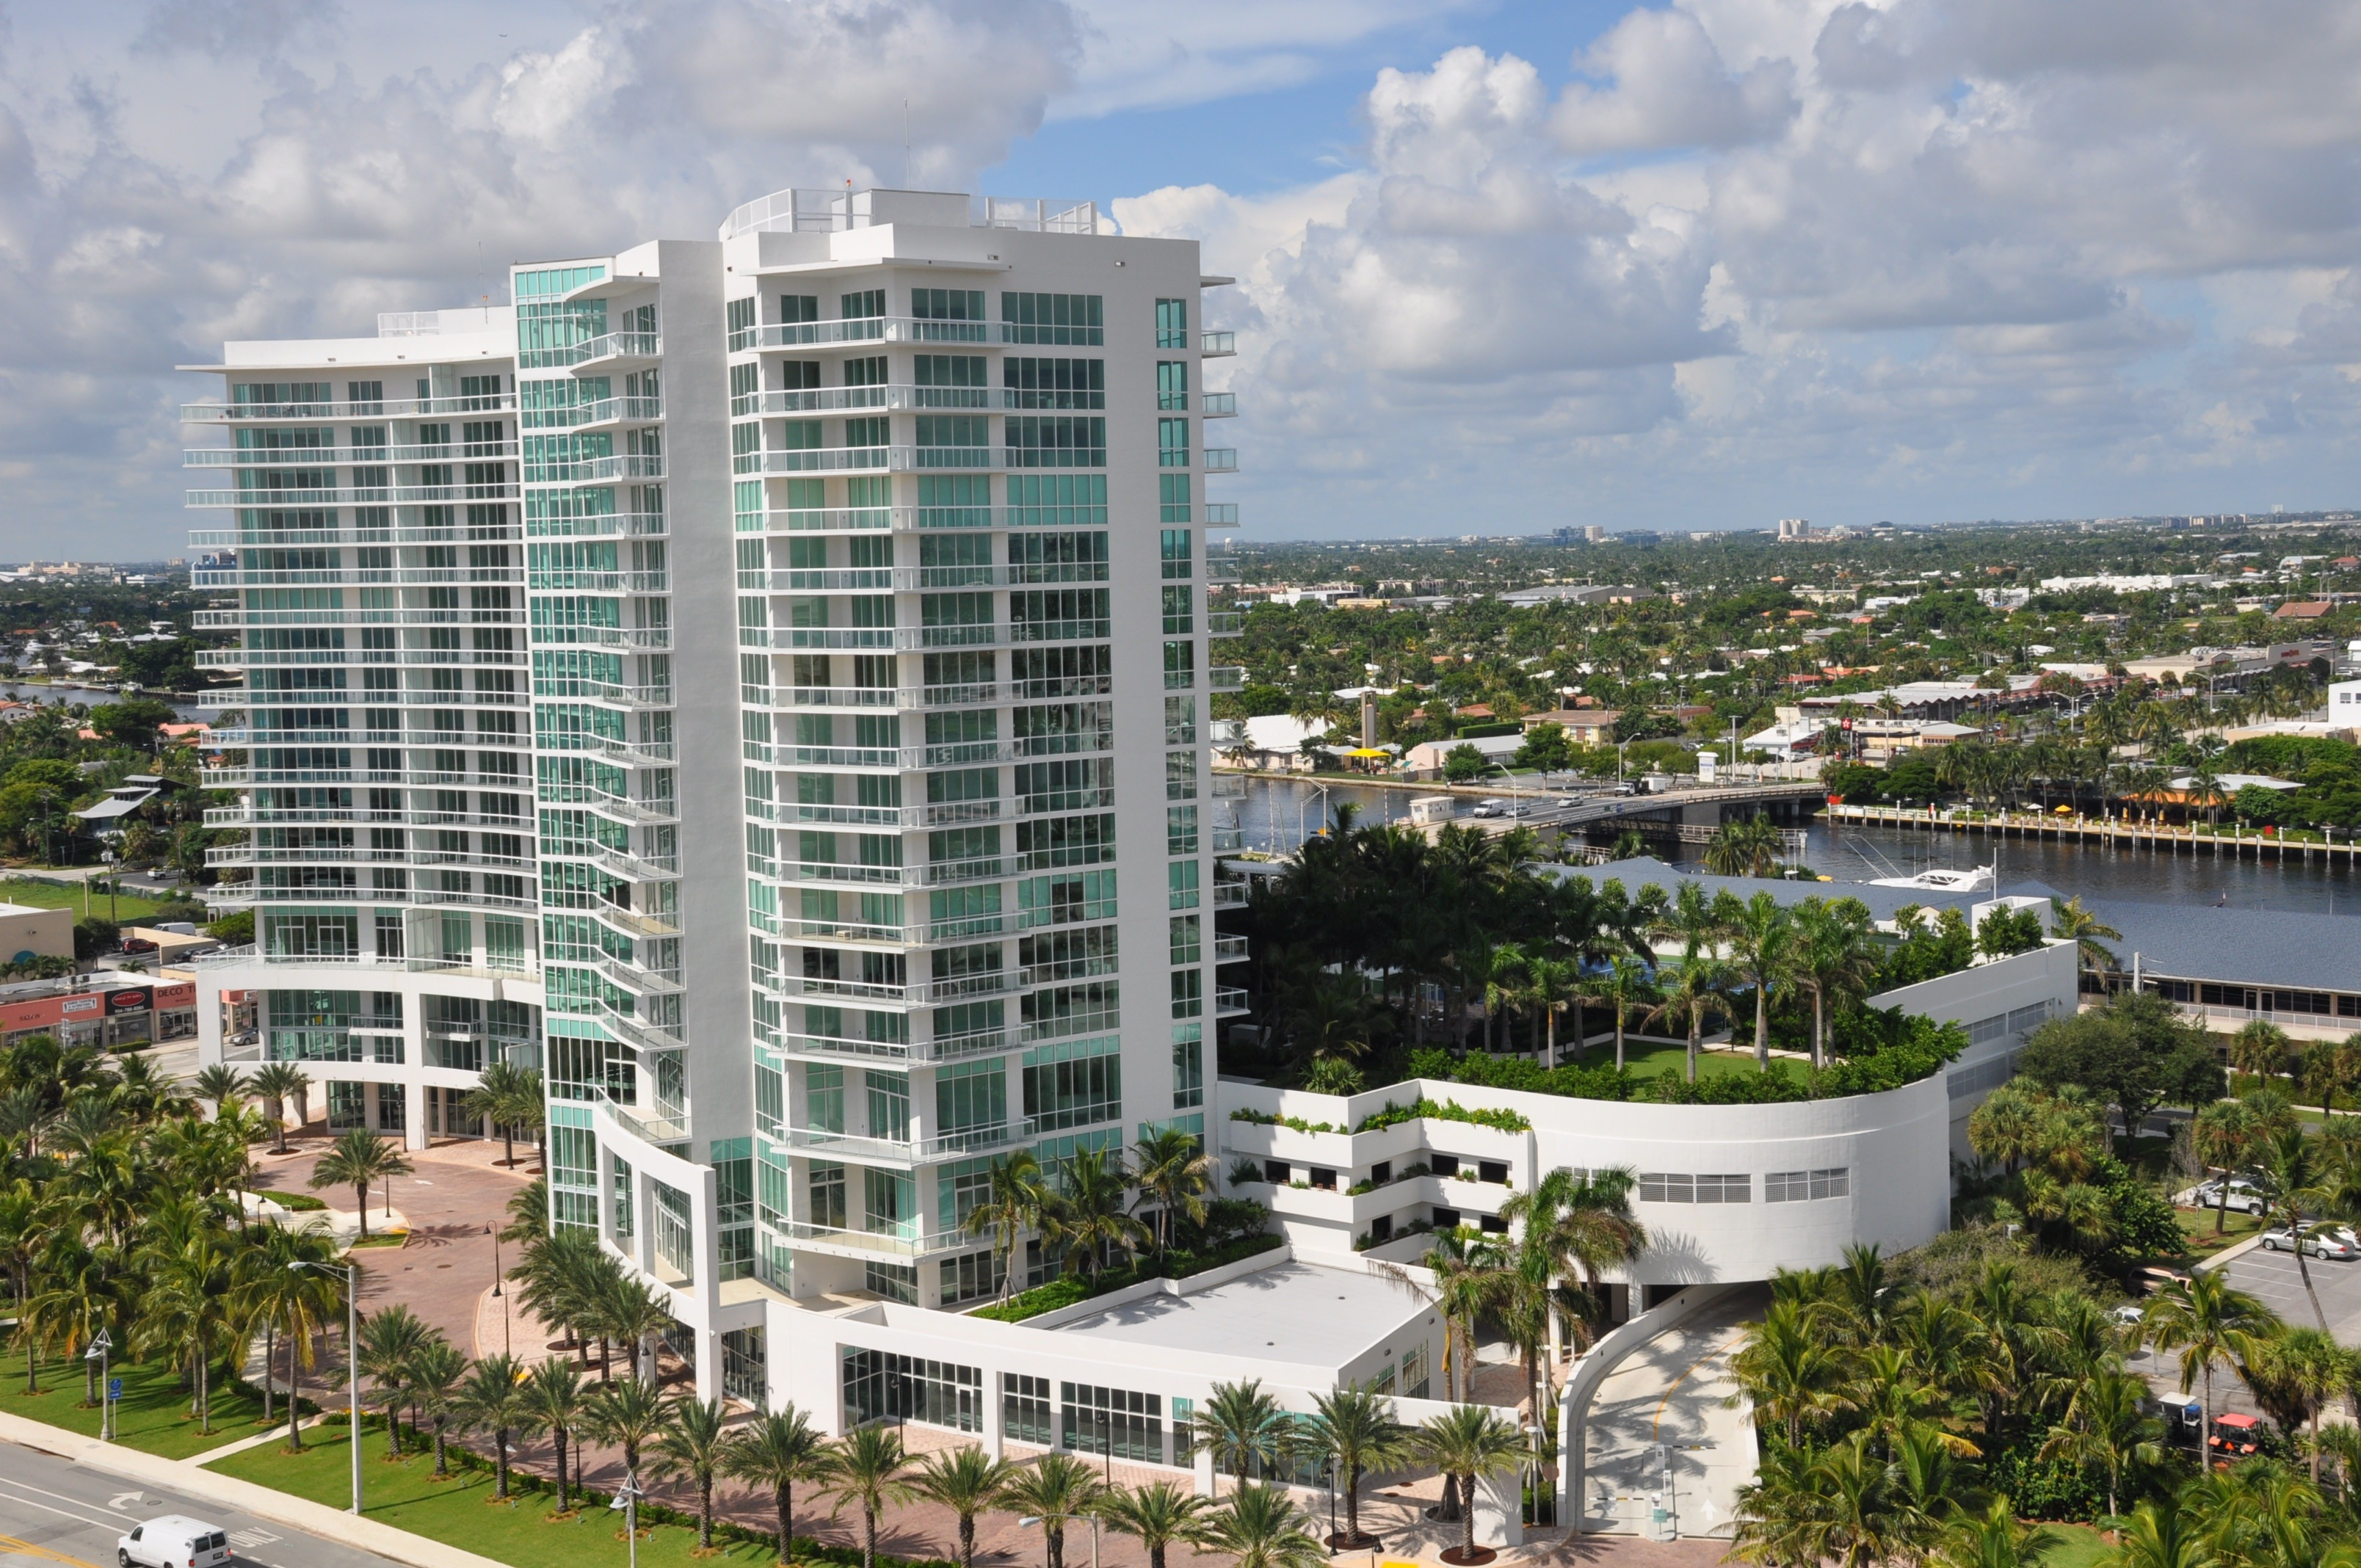 Plaza at Oceanside - Pompano Beach, FL Condos for Sale